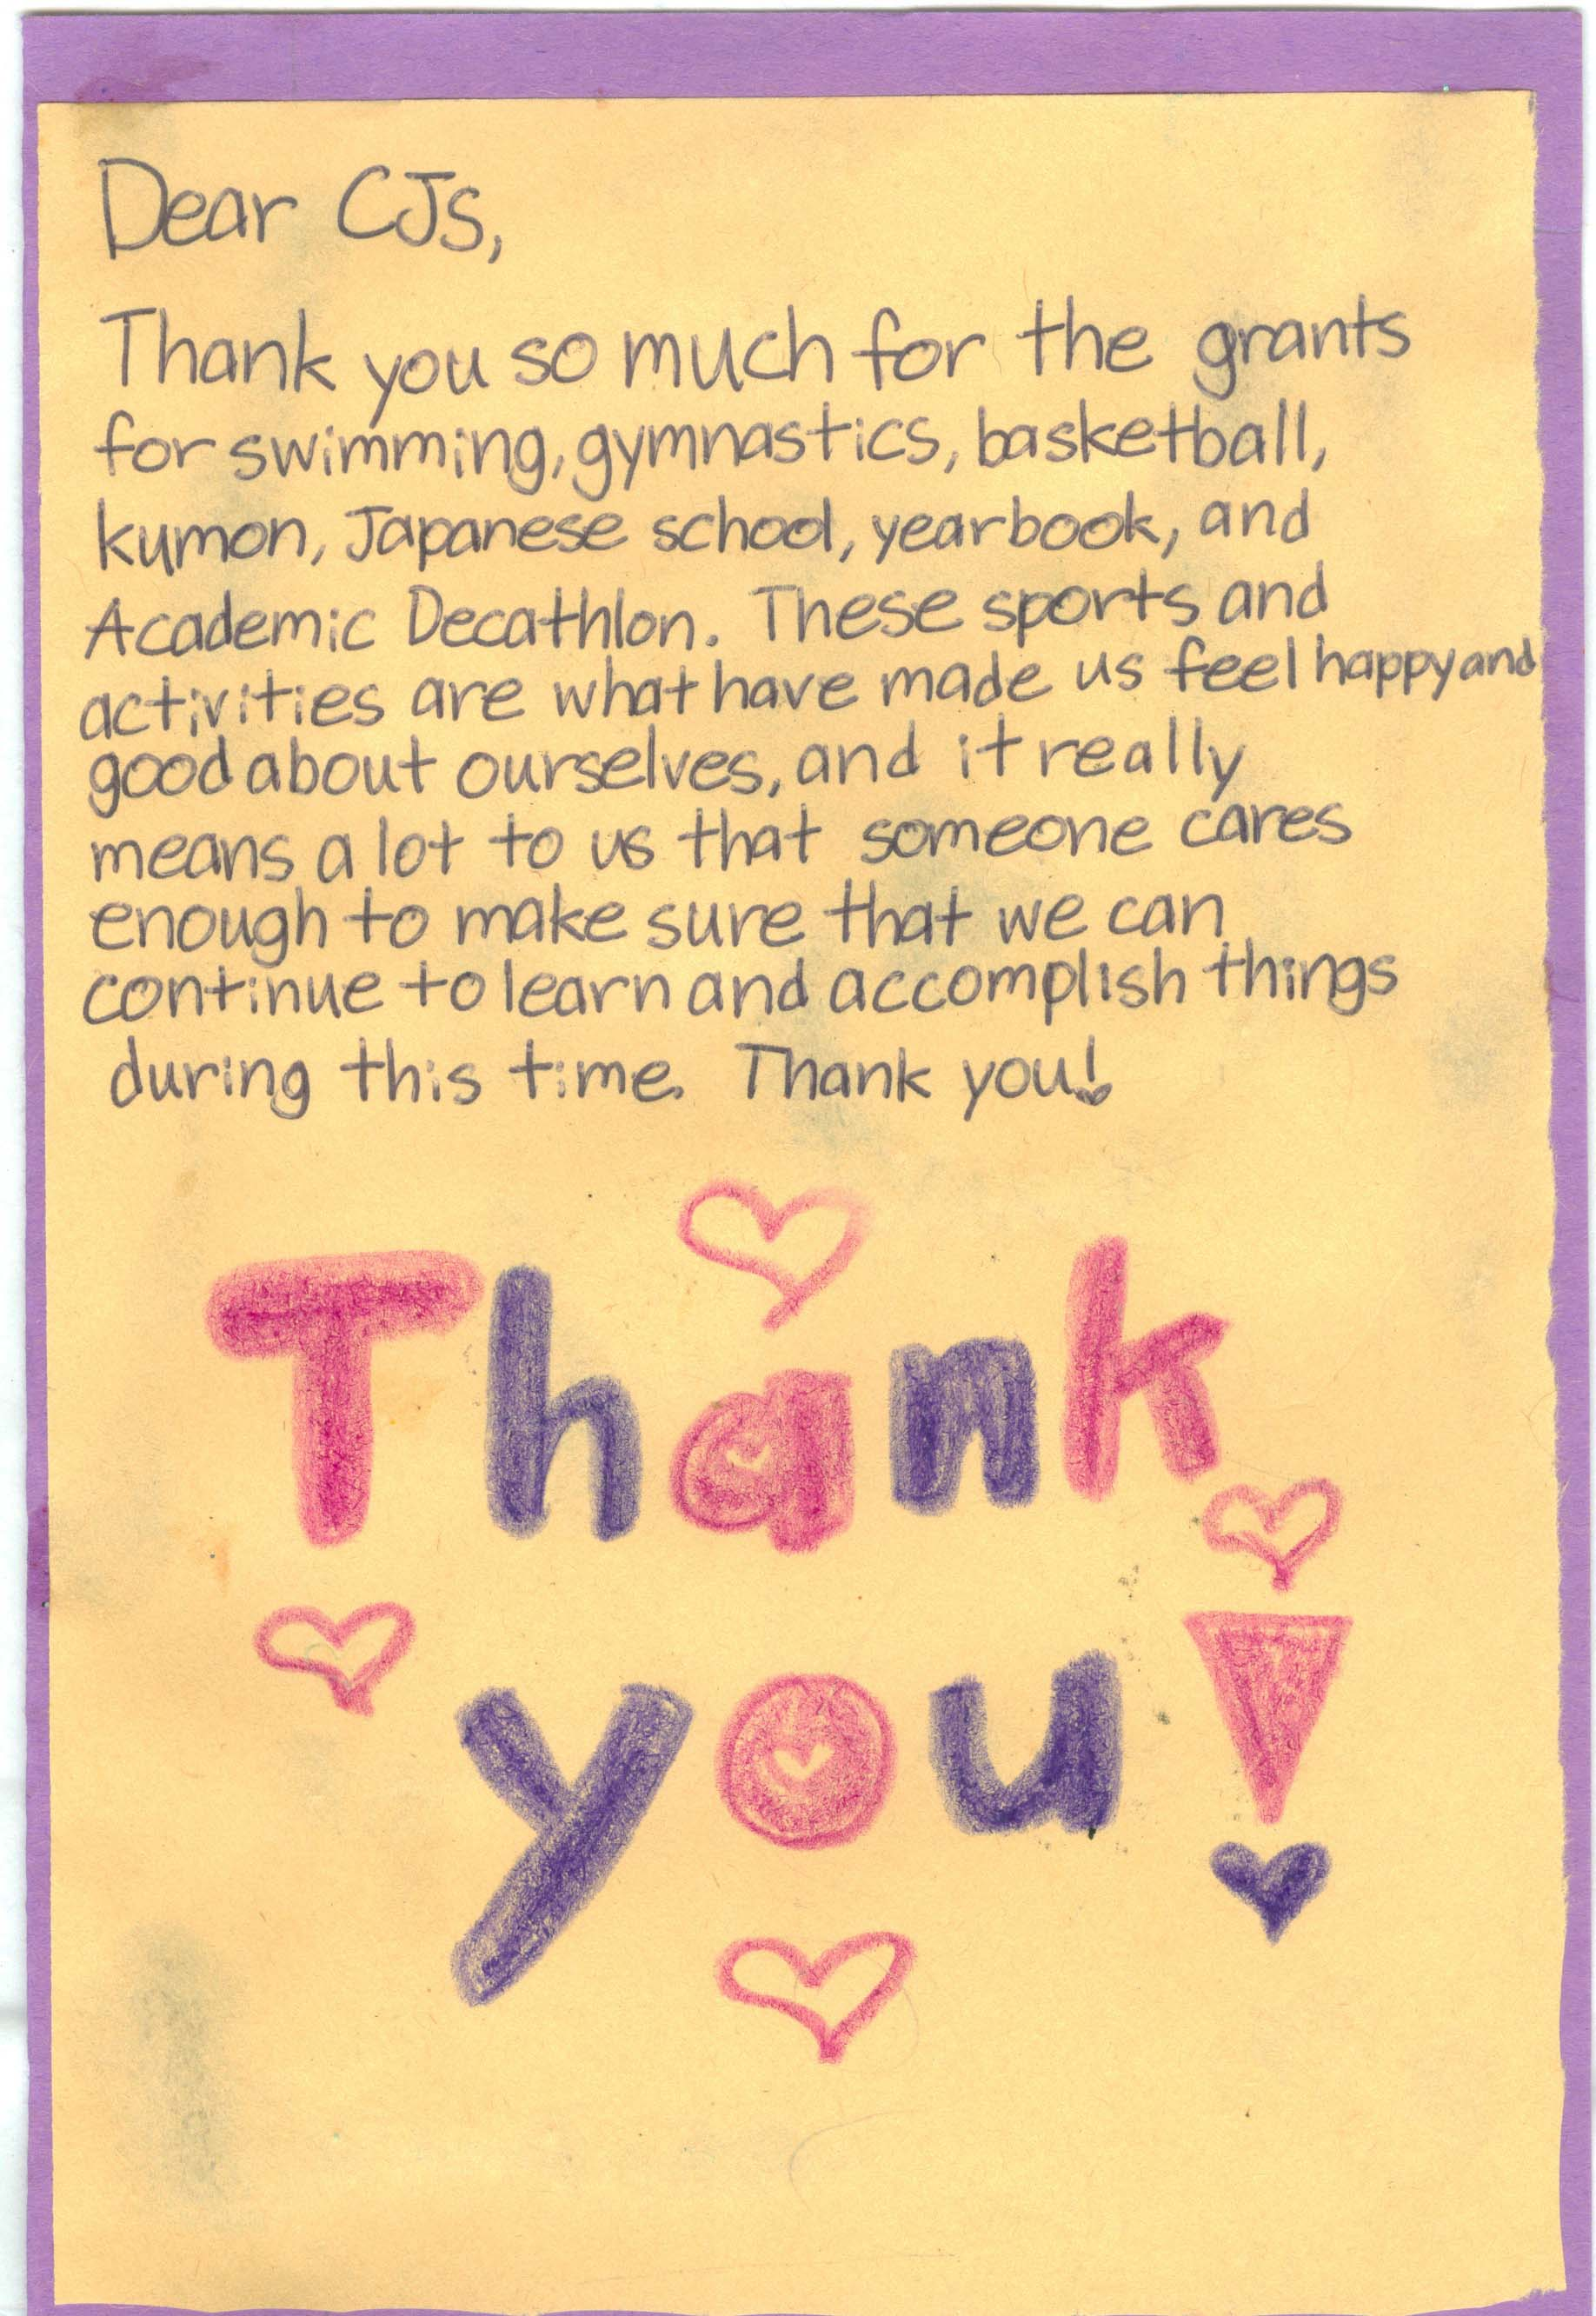 Child Thank You Letter 2.